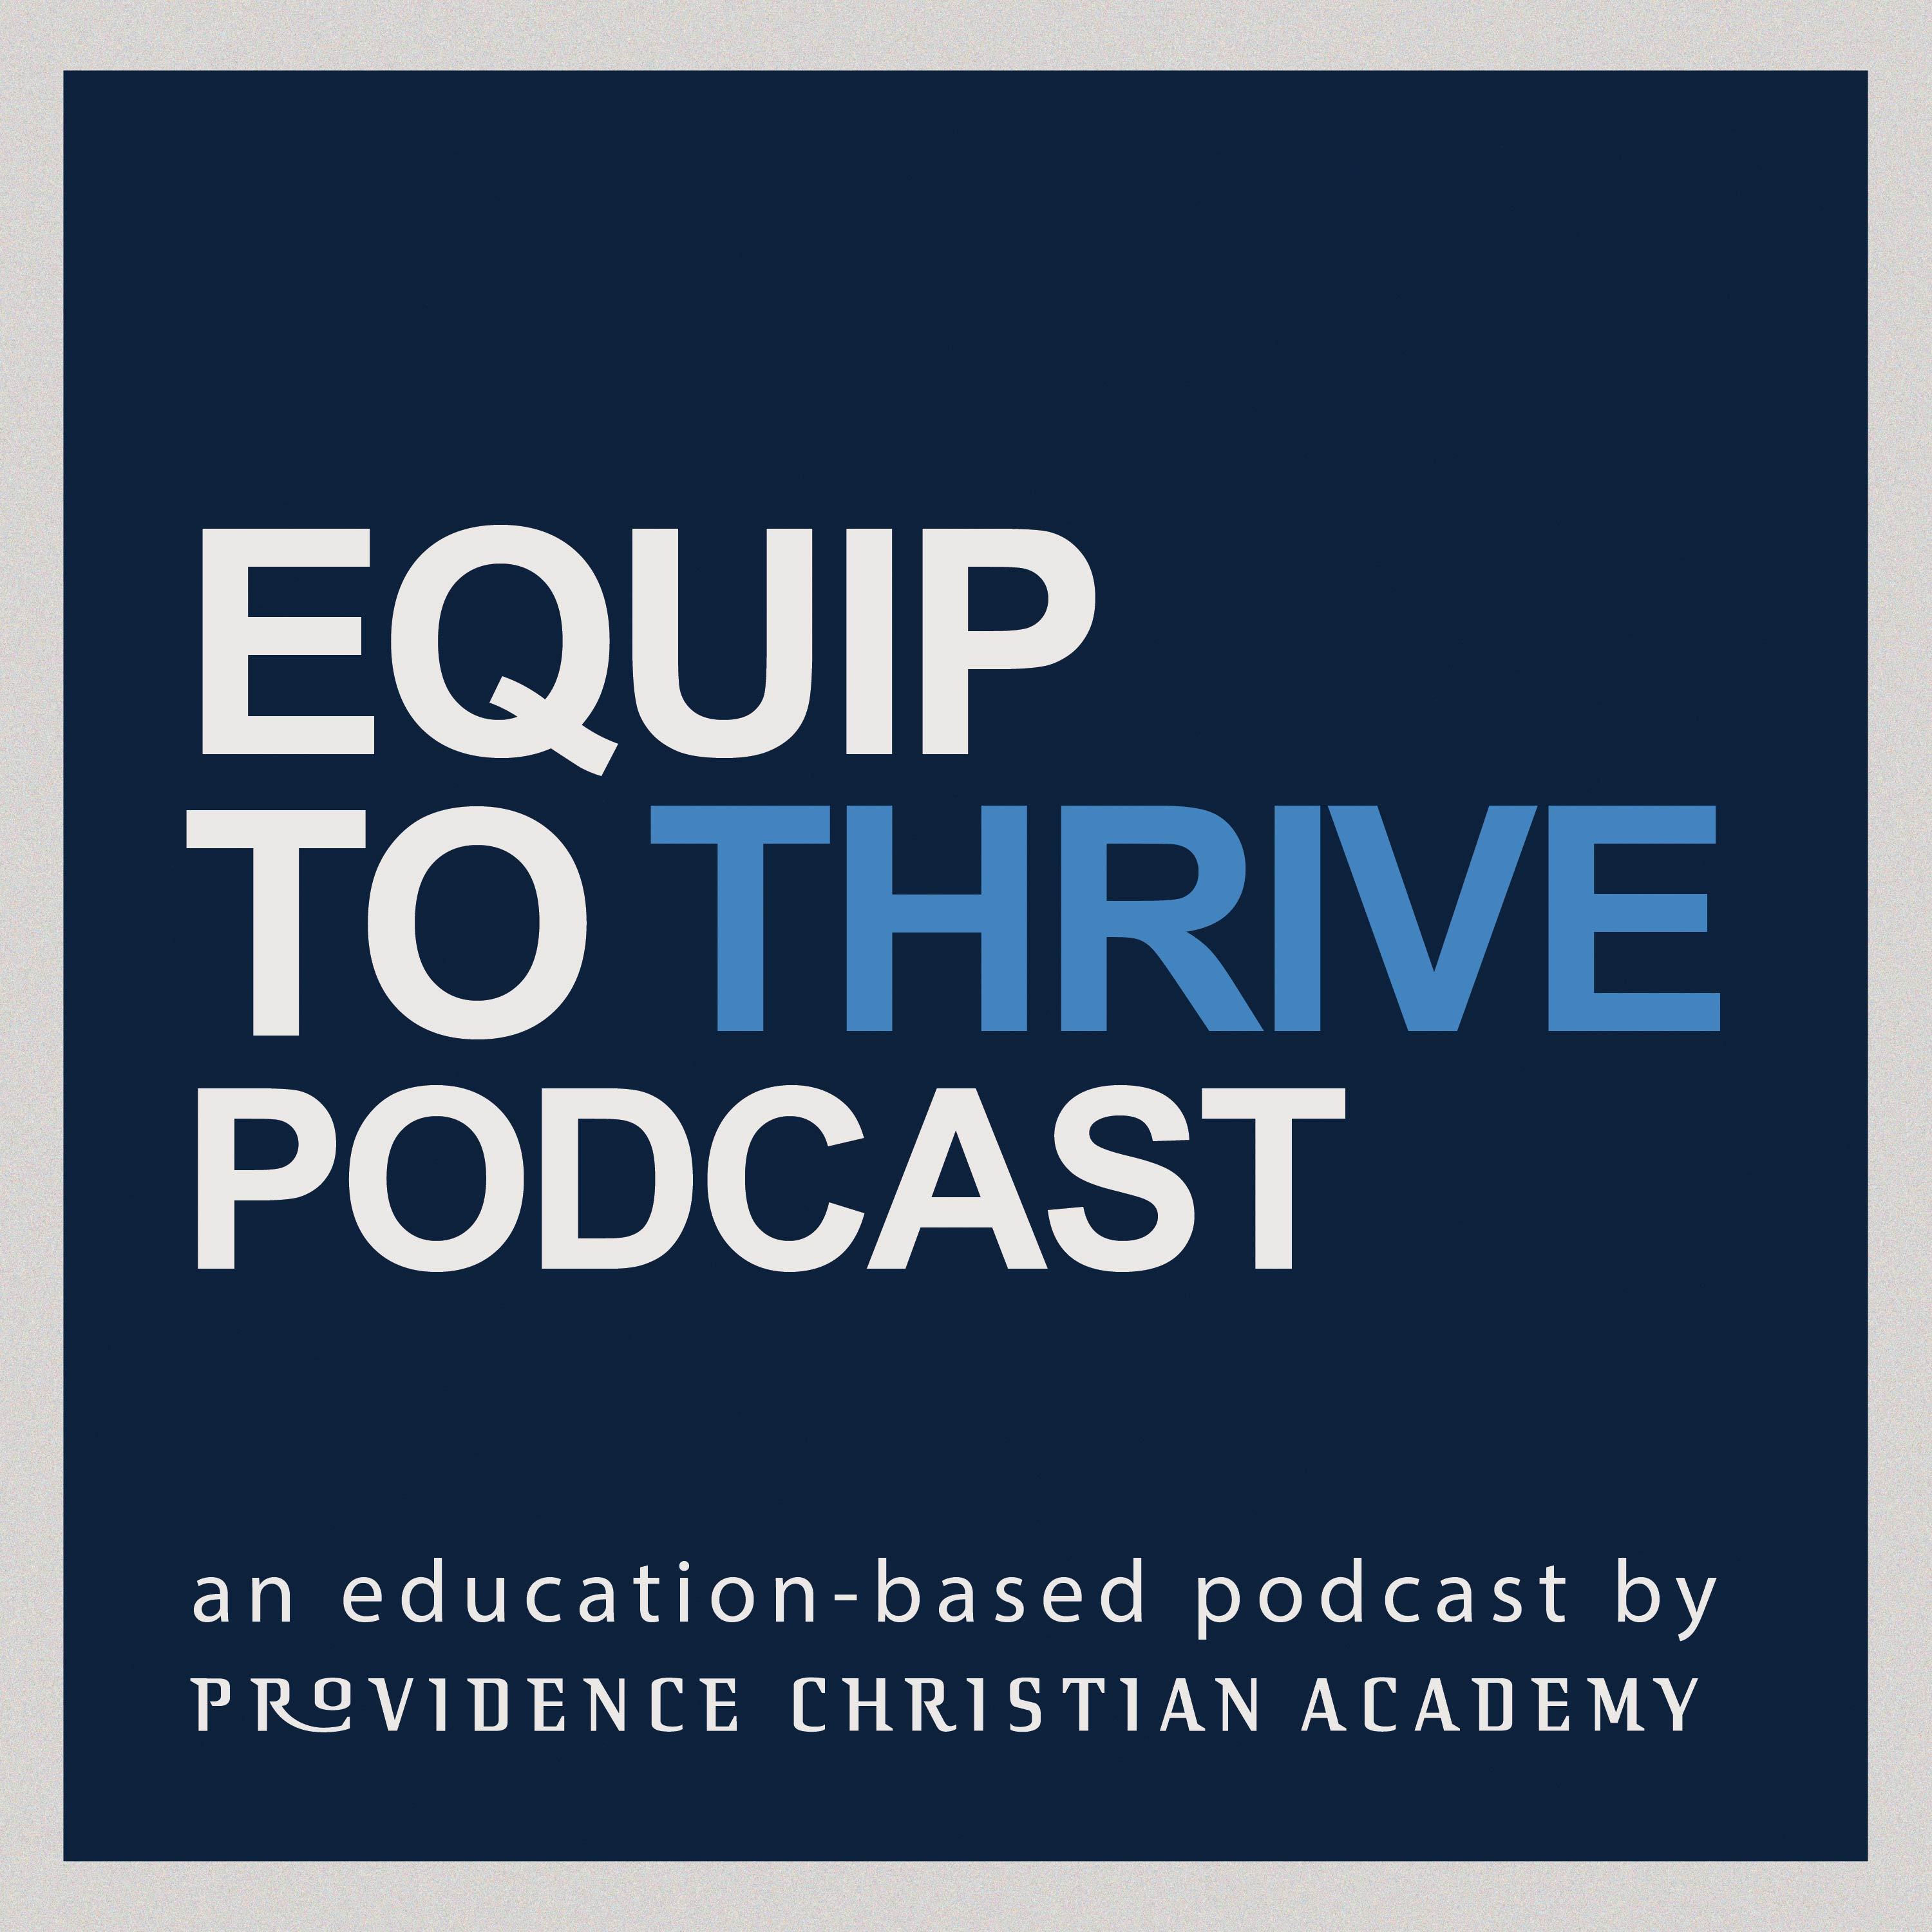 Equip To Thrive